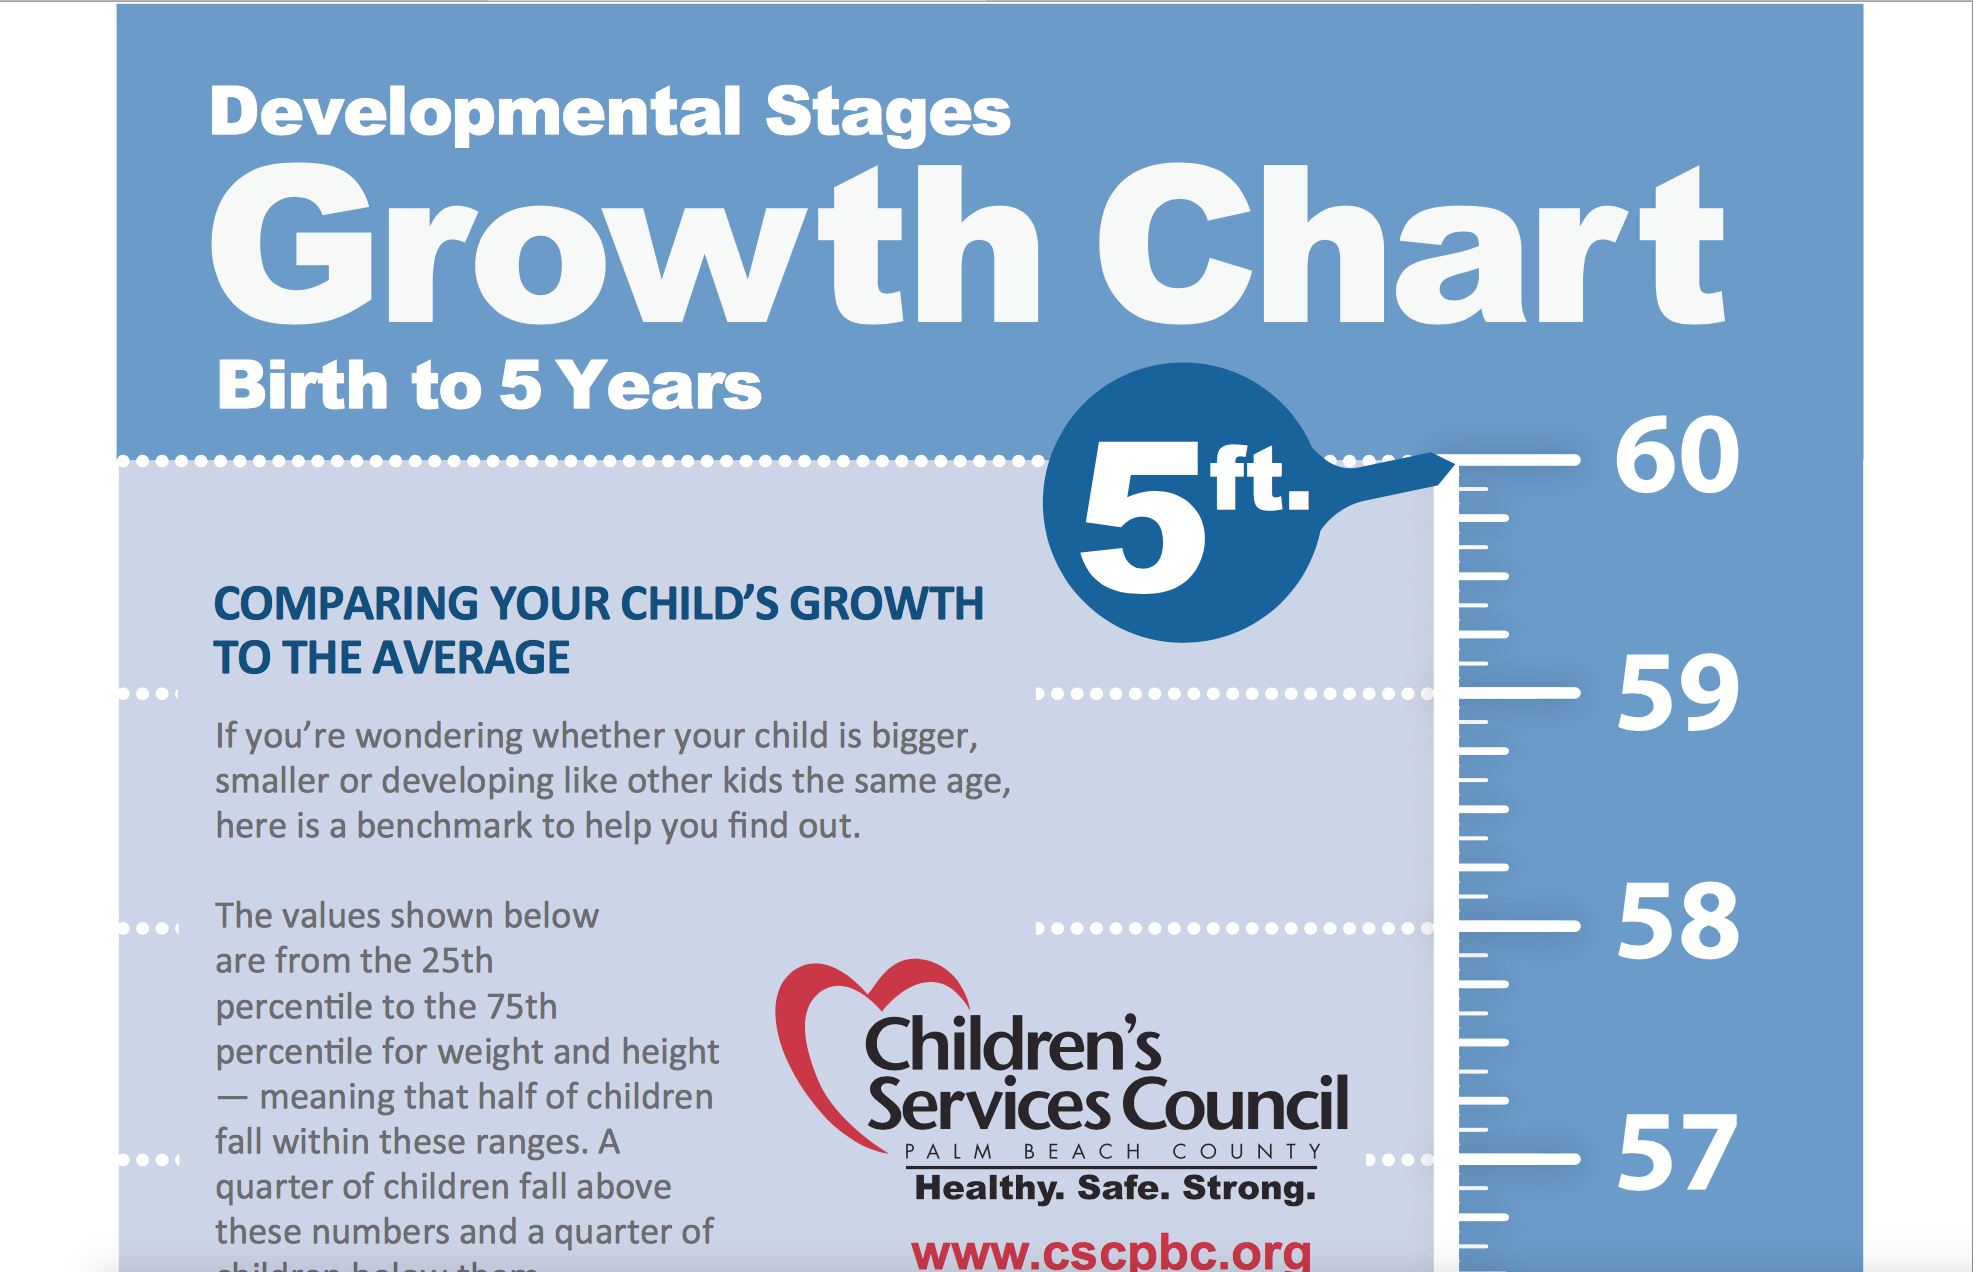 Image of growth chart